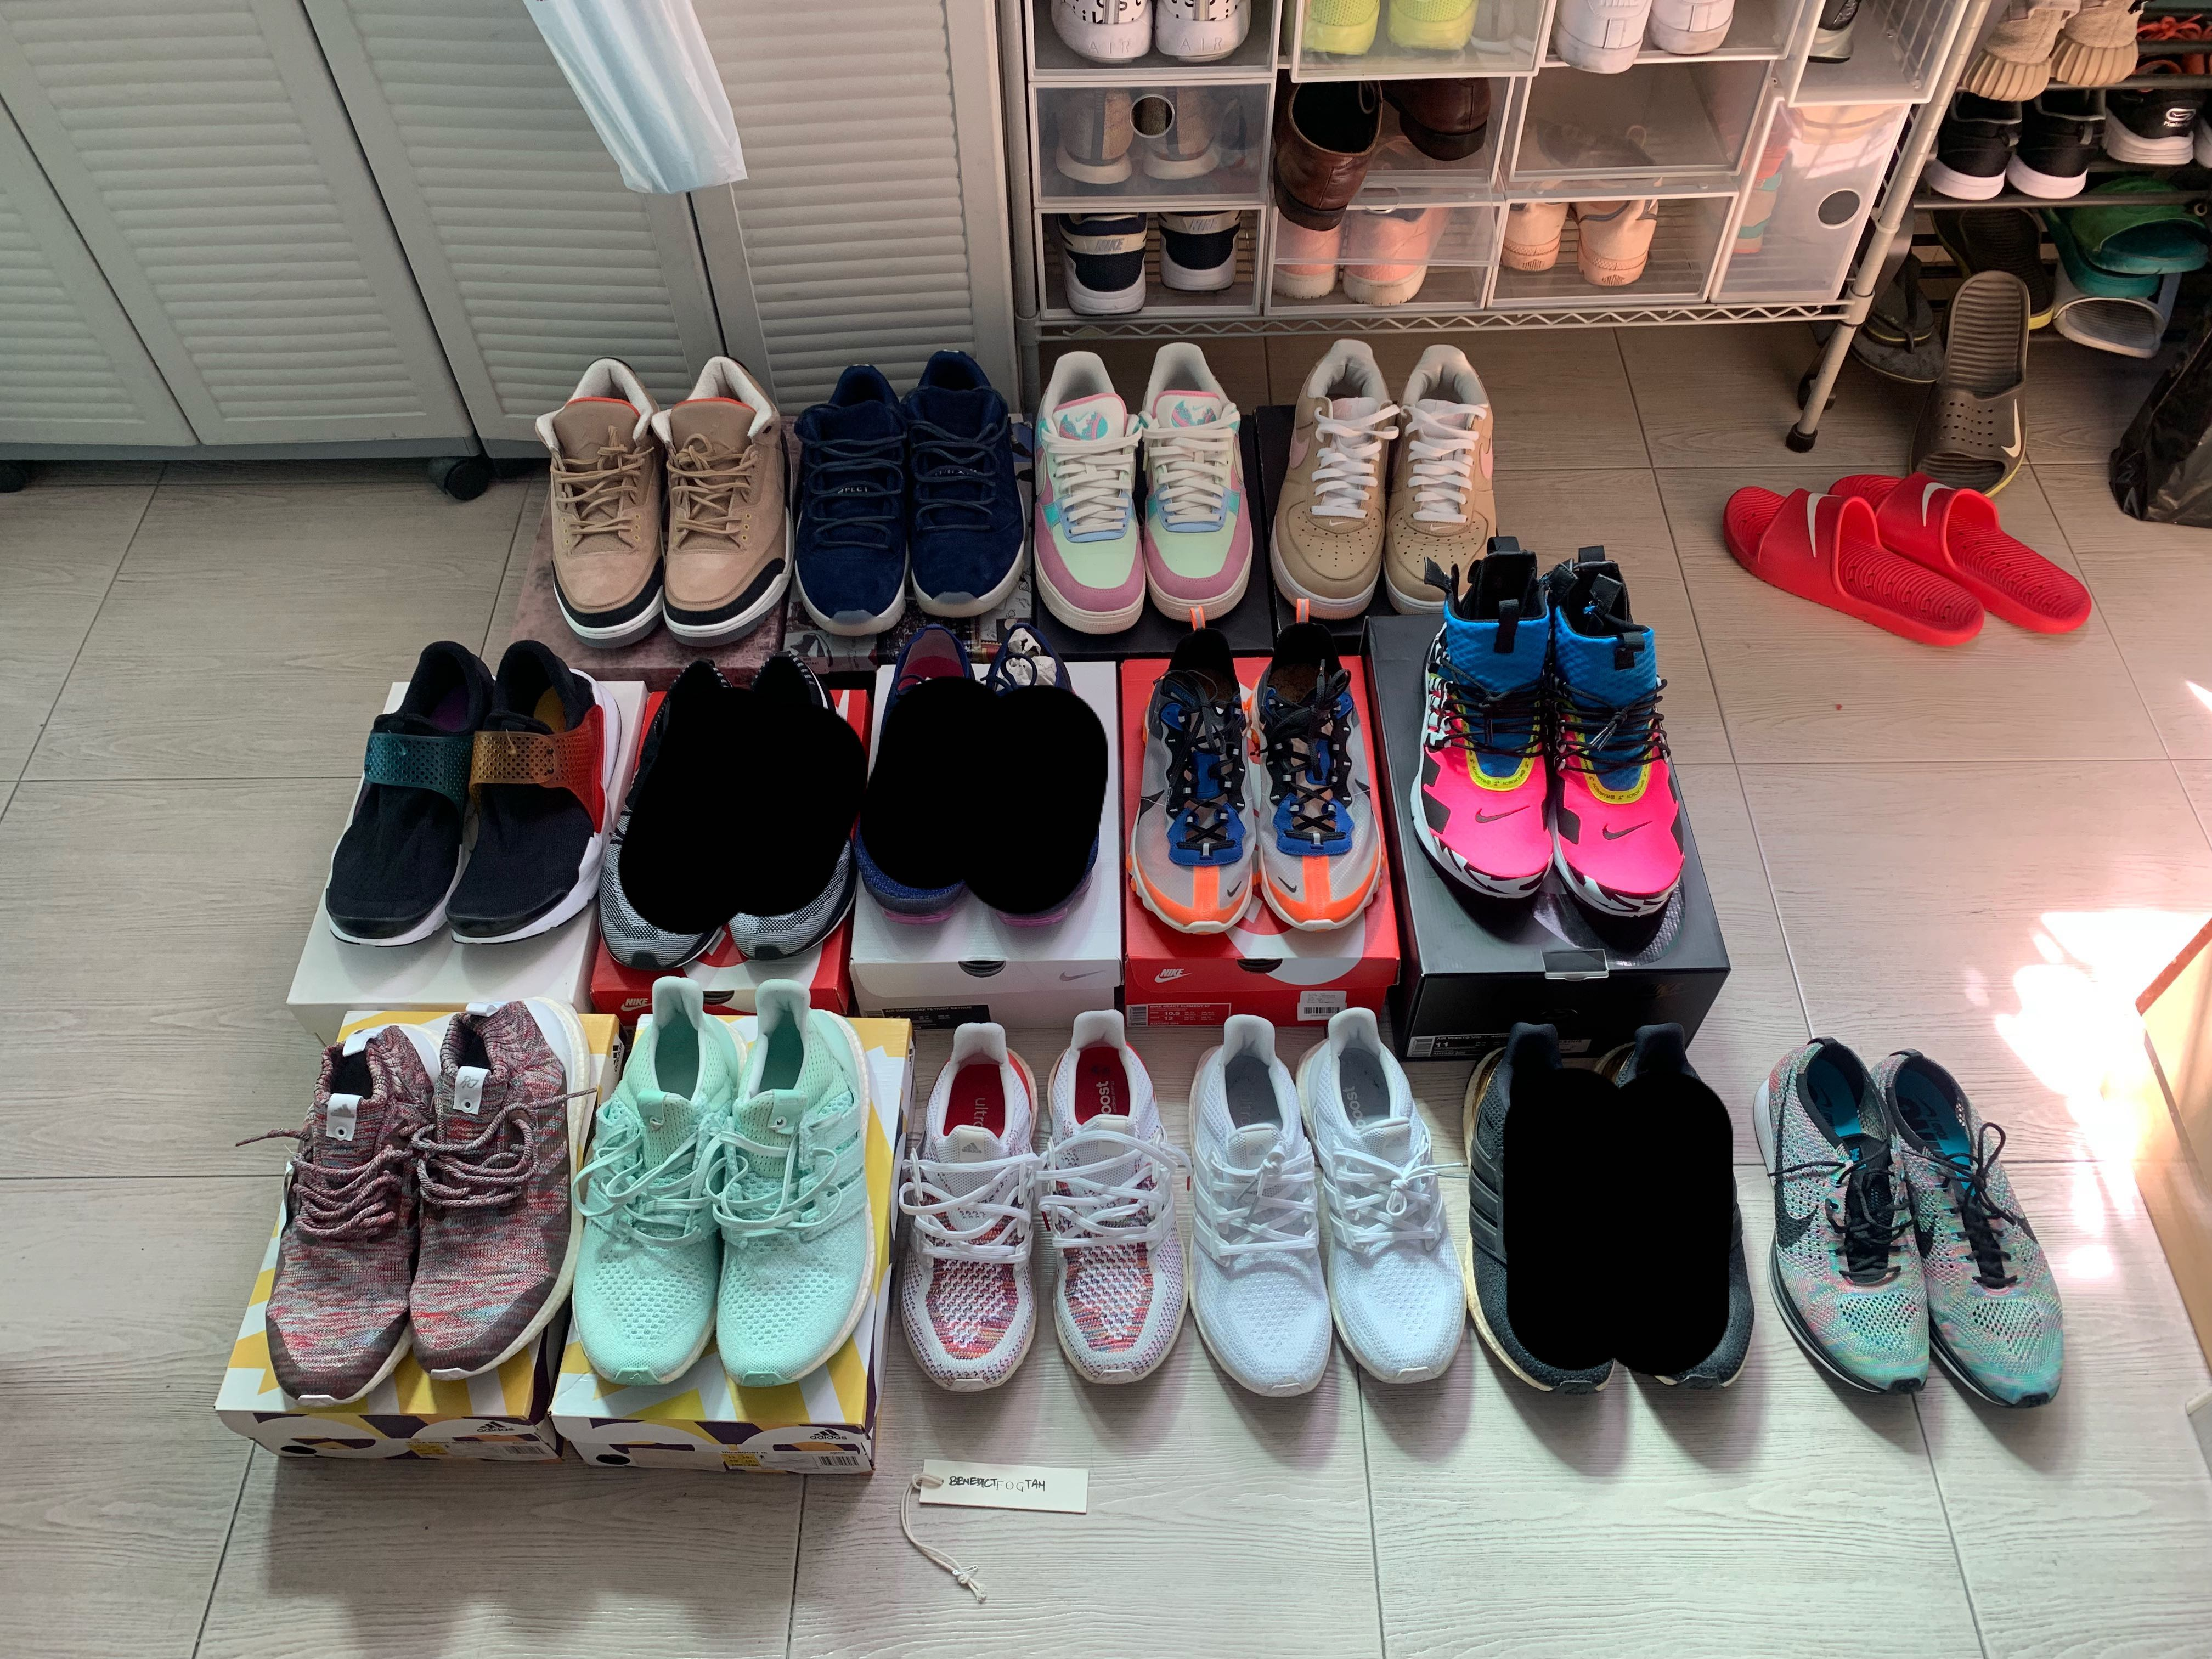 69d2c7a71d9 Nike Adidas Sneakers